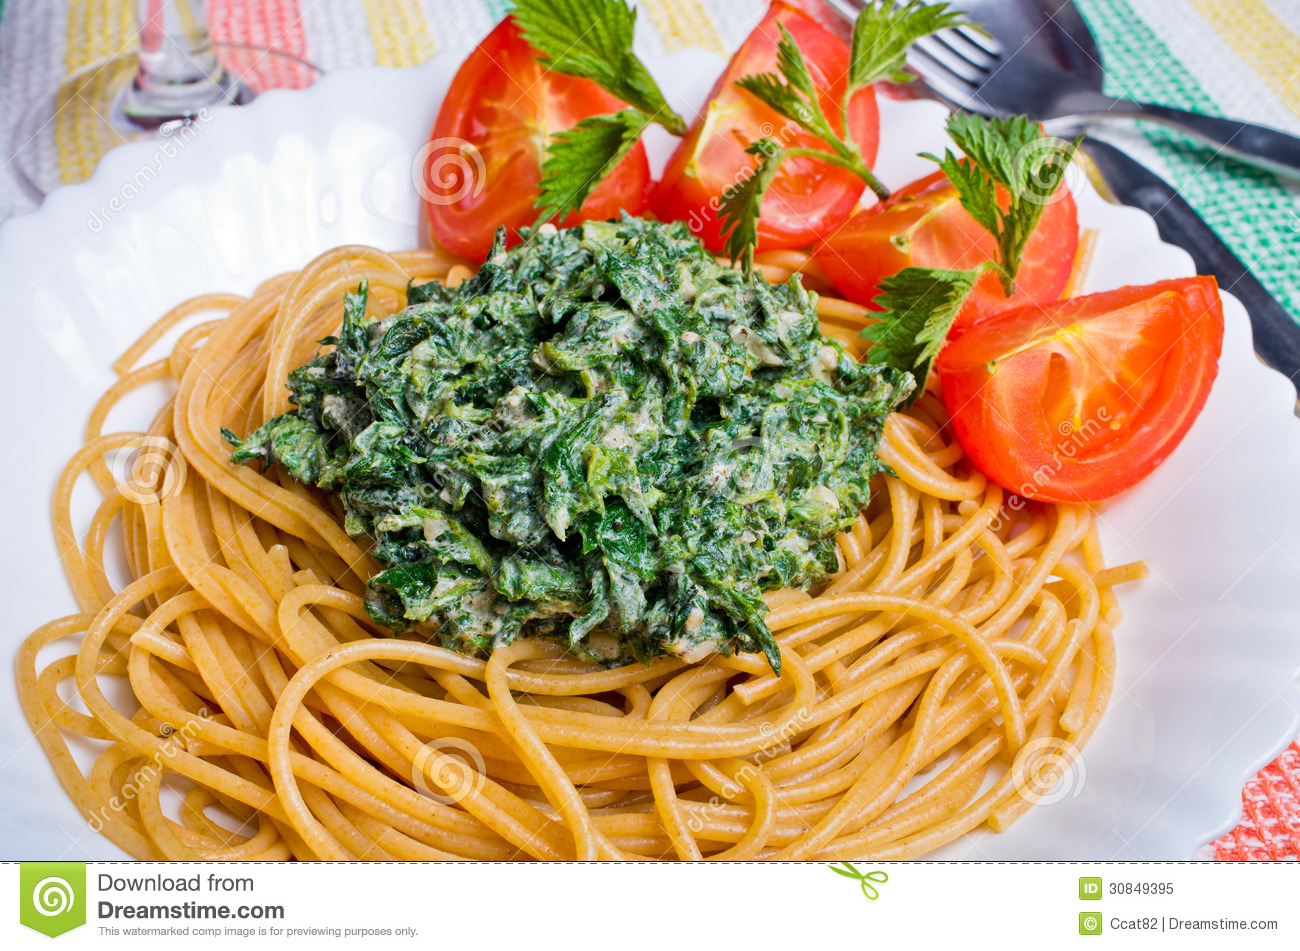 Pasta With Nettles Sauce Royalty Free Stock Photo - Image: 30849395